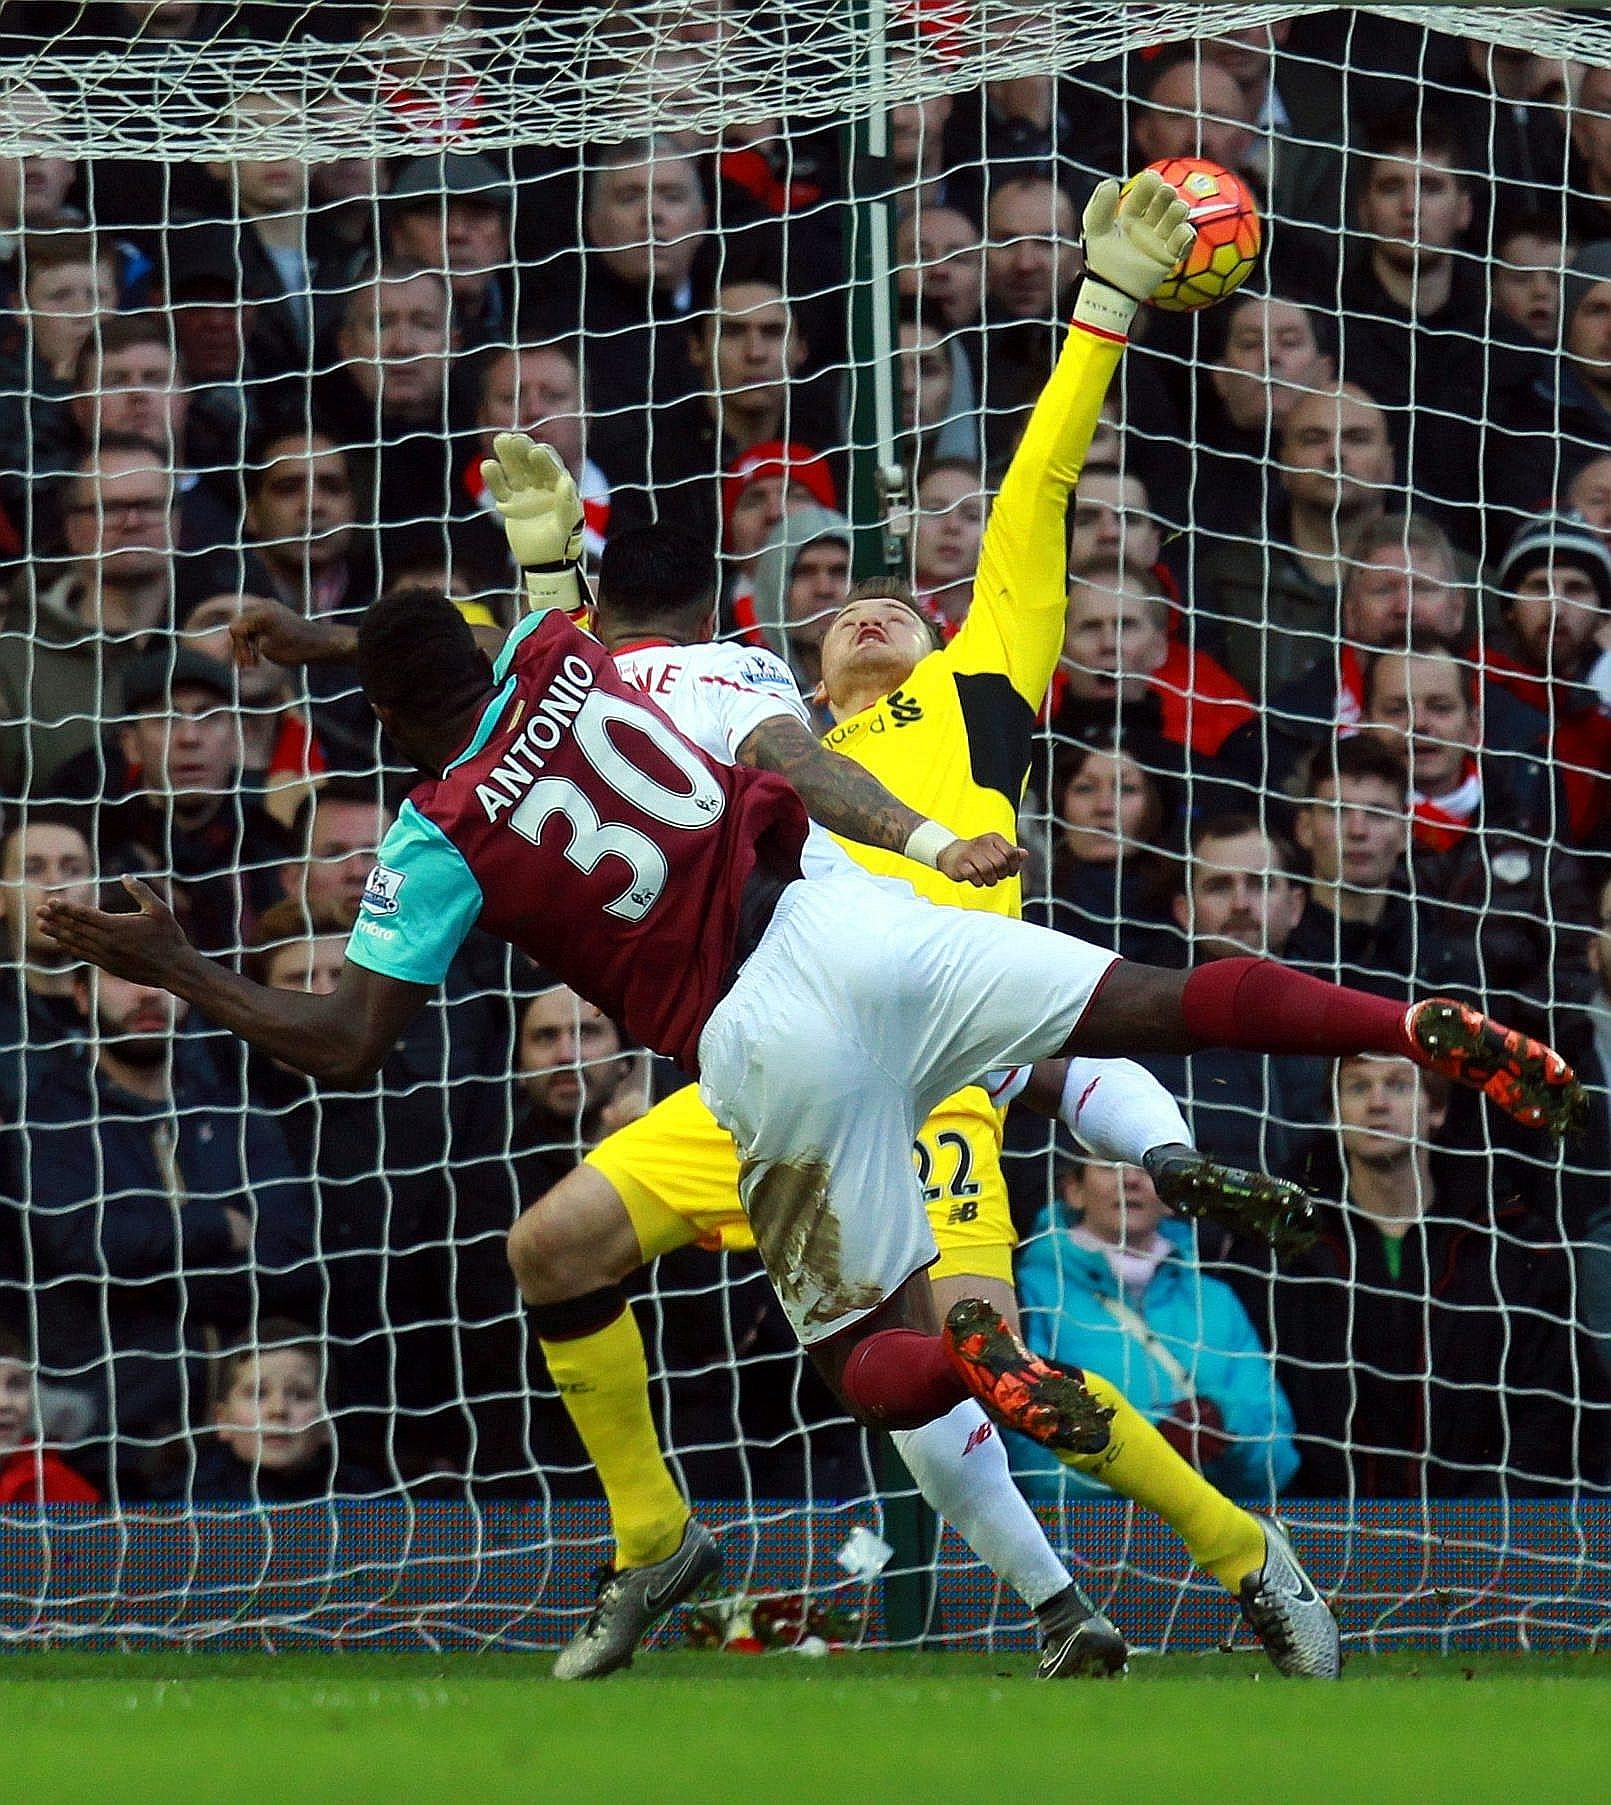 West Ham's Michail Antonio heading past Liverpool goalkeeper Simon Mignolet to open the scoring for the Hammers. Andy Carroll netted a second for the hosts to complete a league double over the Reds.